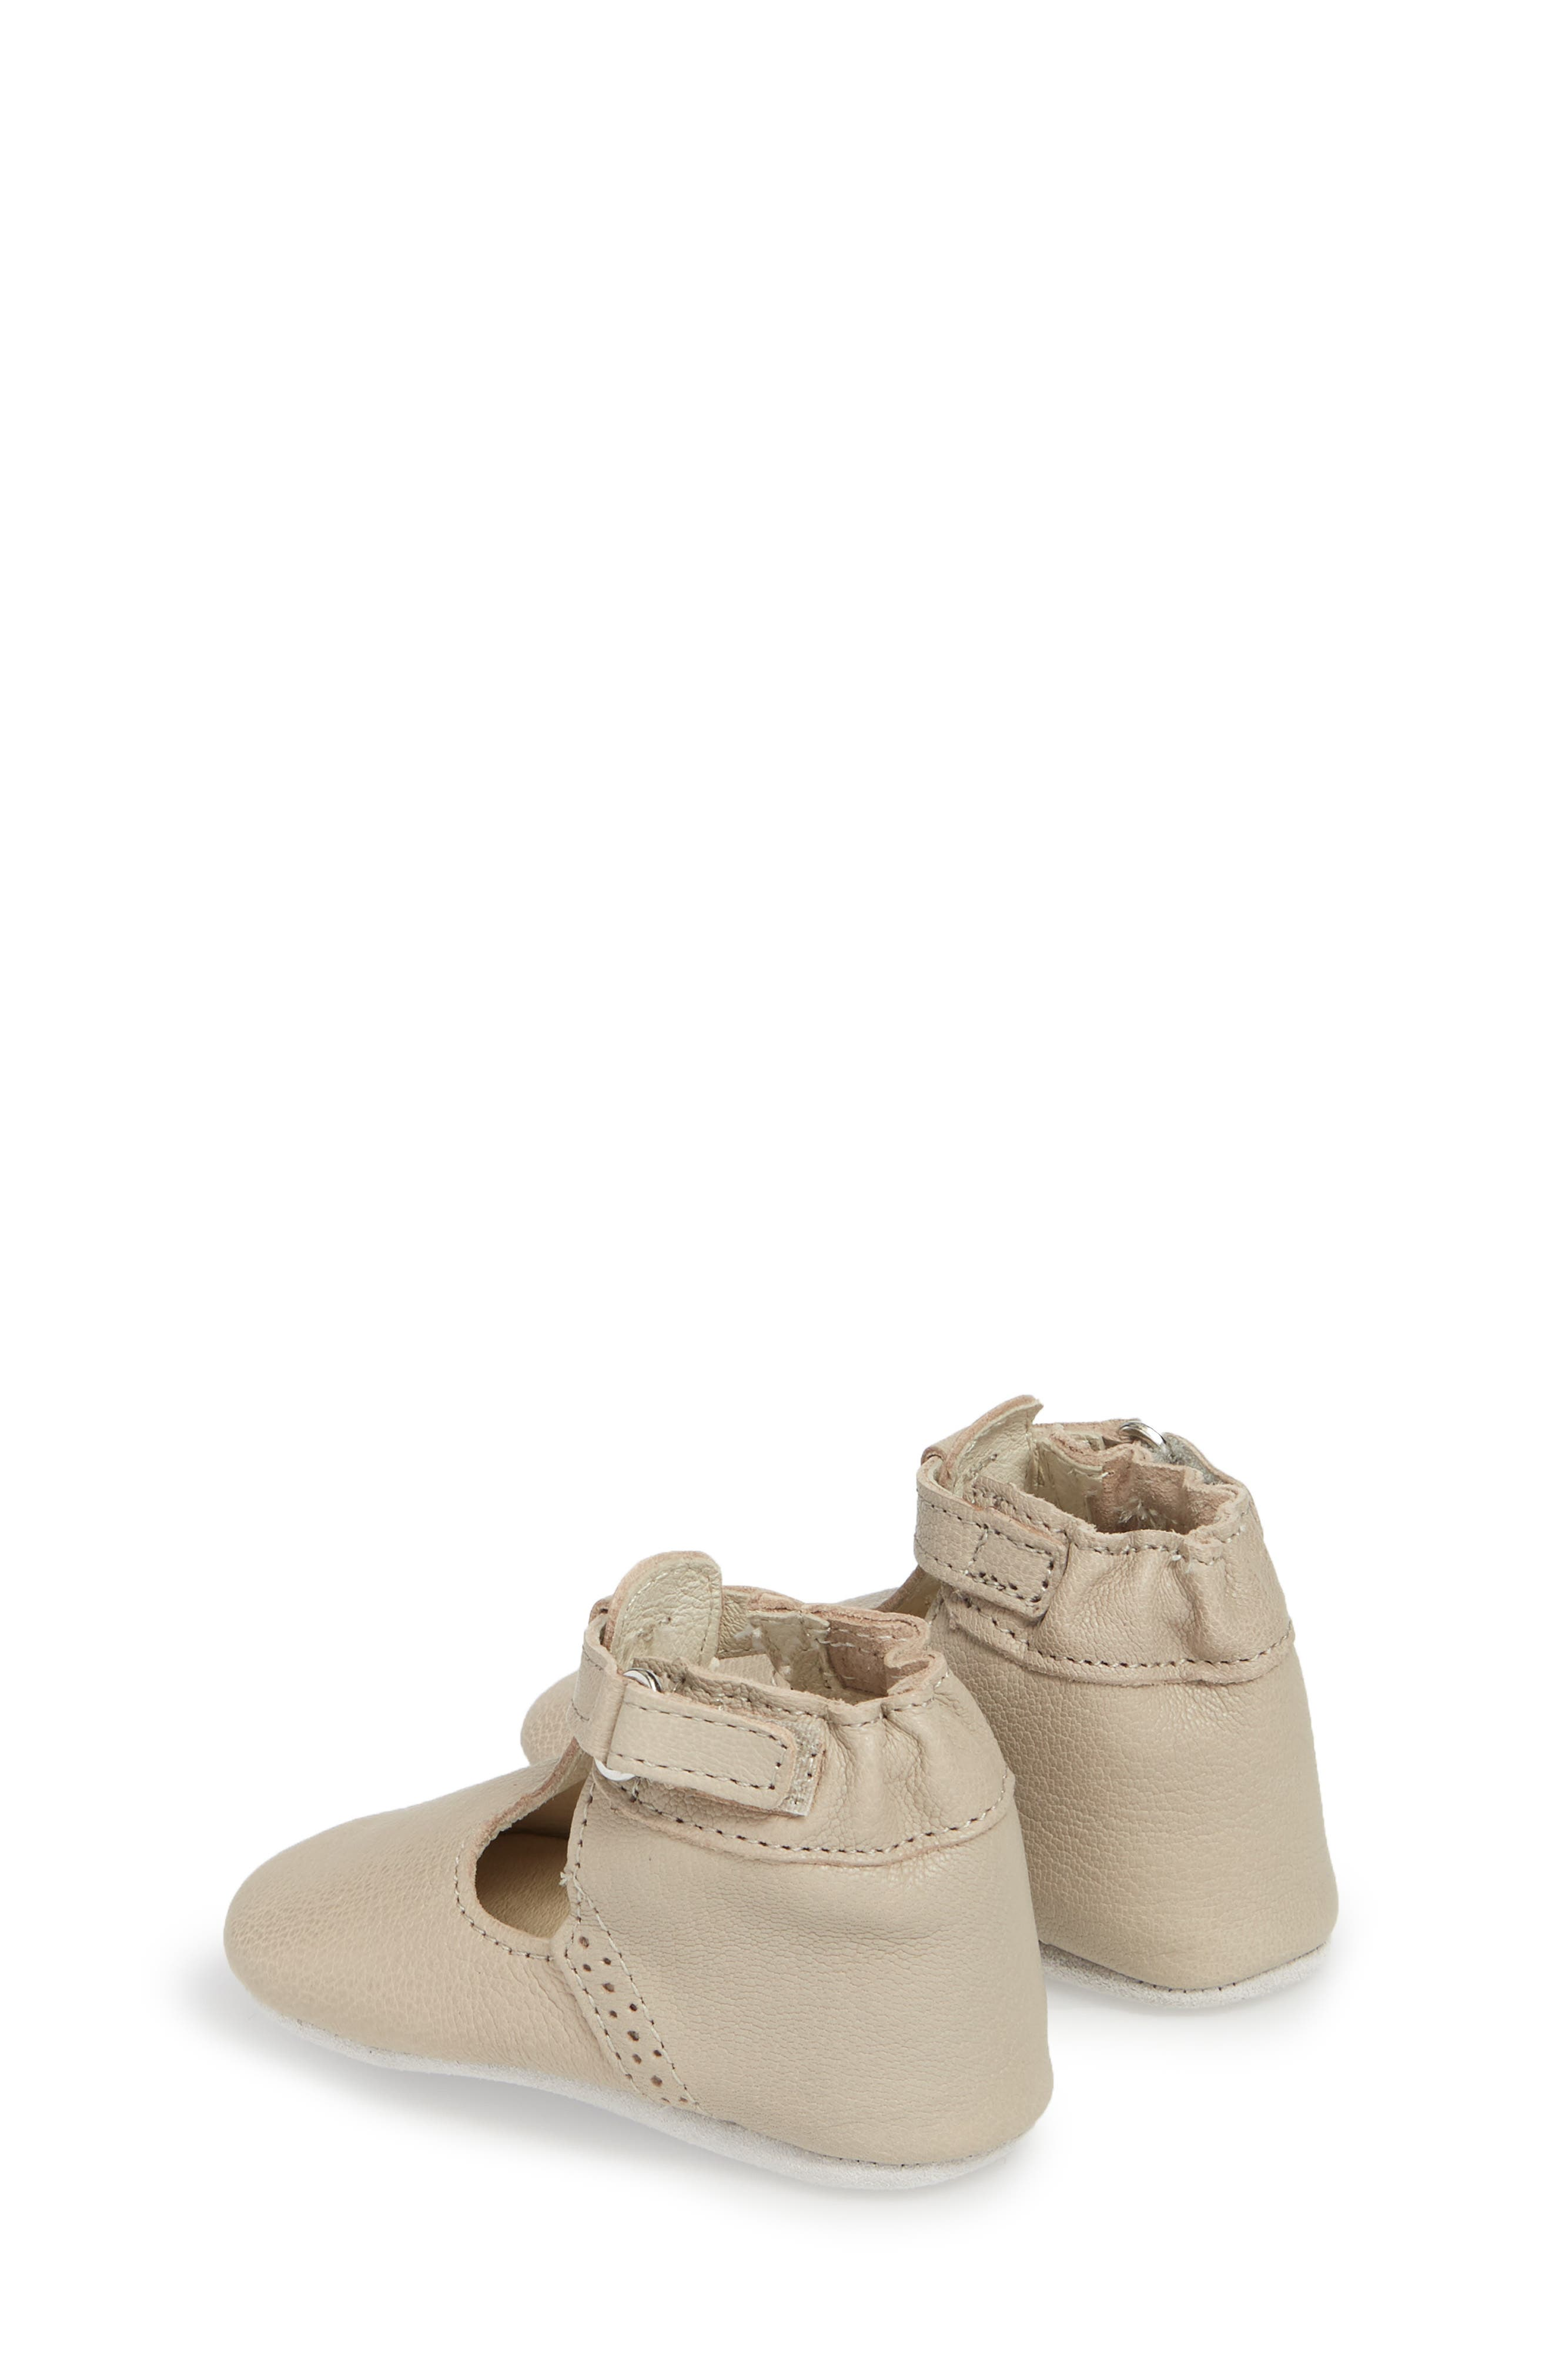 ROBEEZ<SUP>®</SUP>, Penny T-Strap Mary Jane Crib Shoe, Alternate thumbnail 2, color, TAUPE